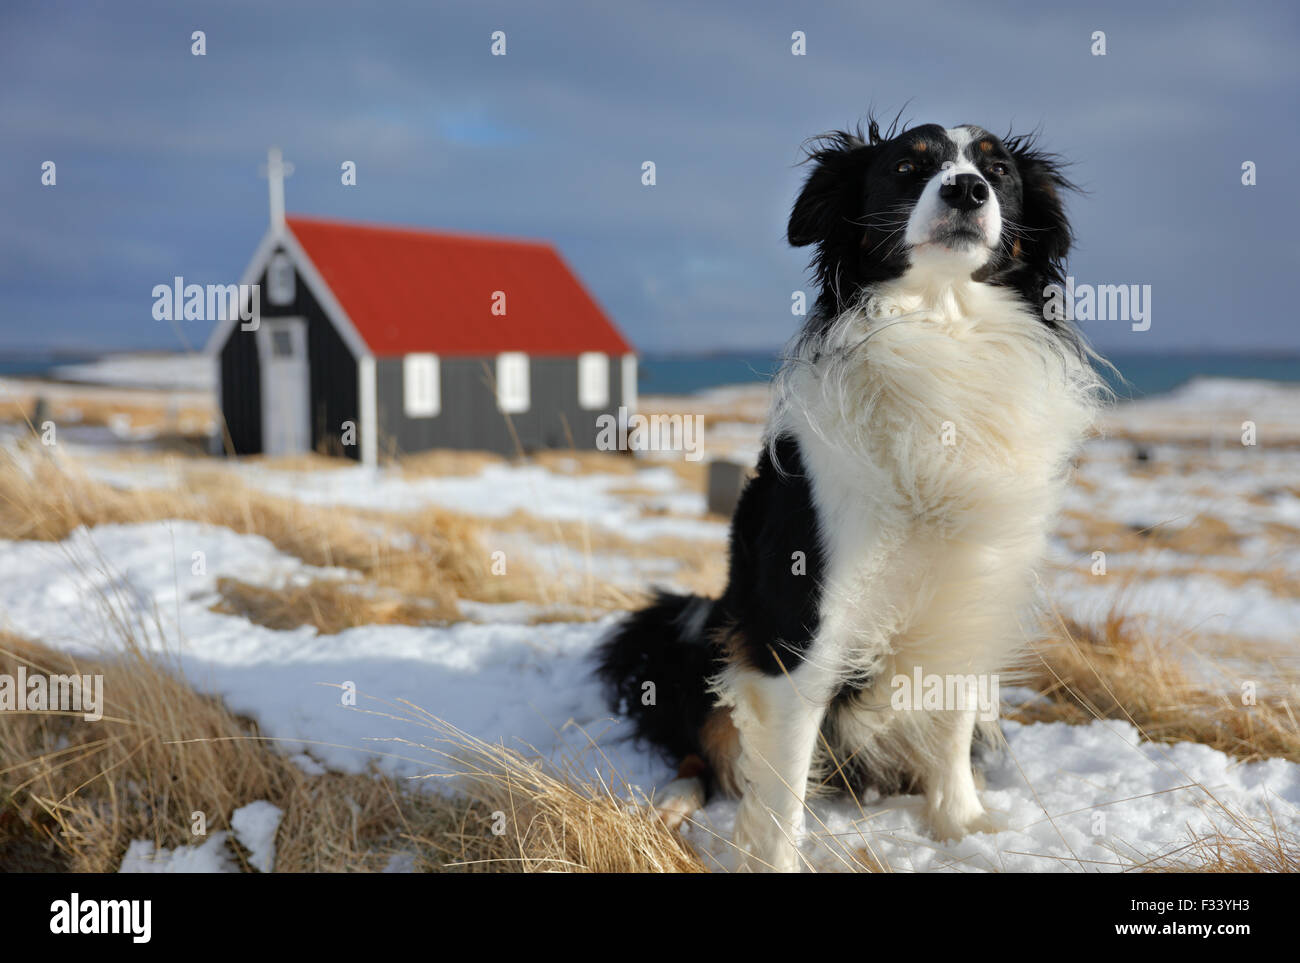 a dog in front of the church at Bjarnarhofn, Snaefellsness Peninsula, Iceland - Stock Image